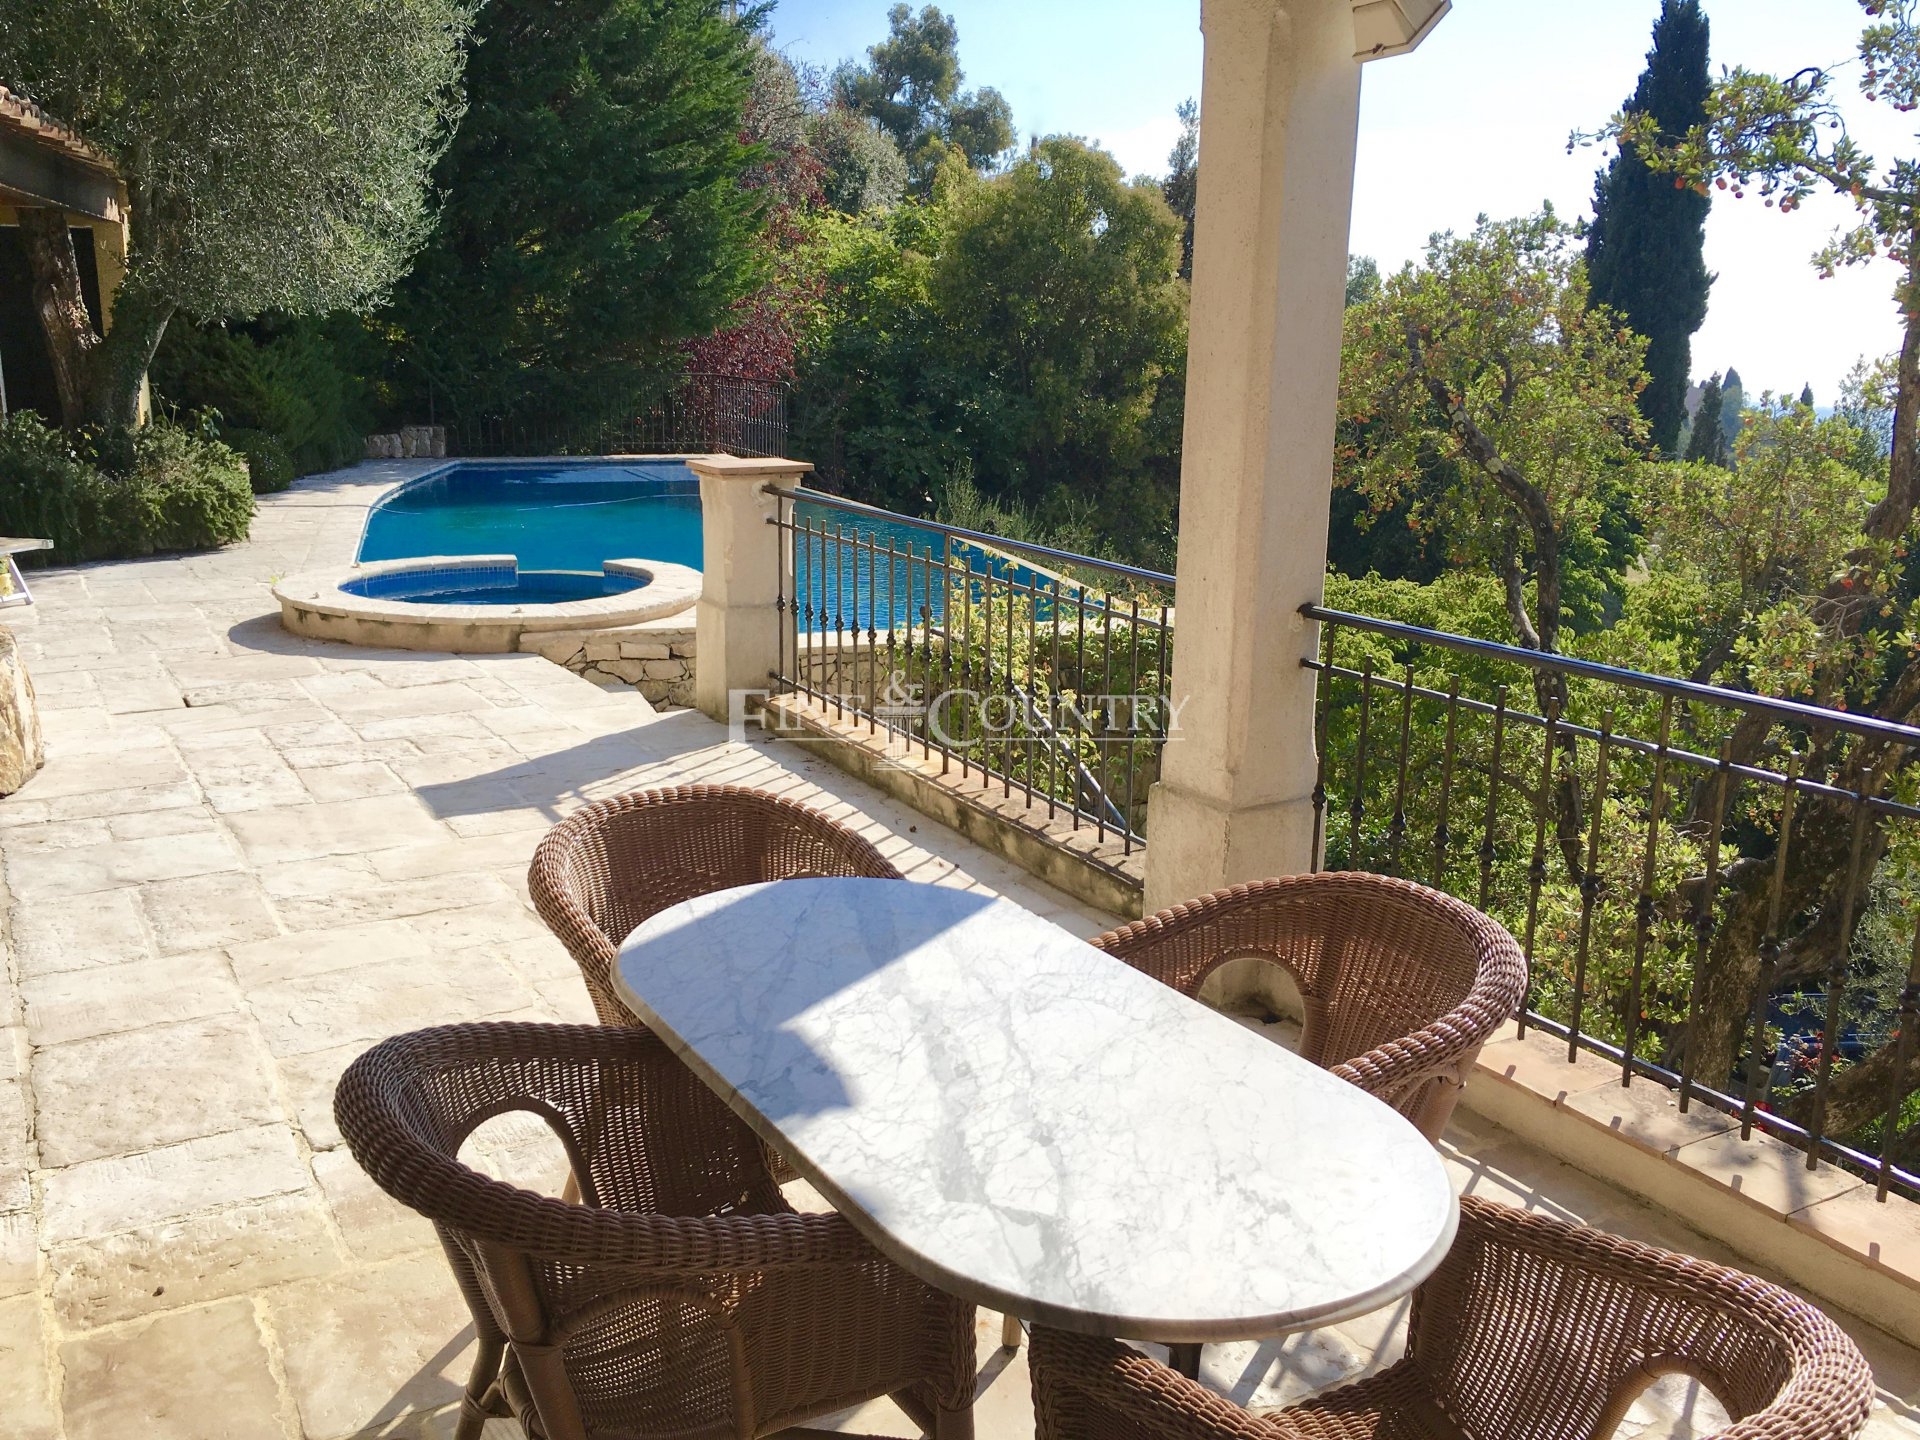 Villa for sale in Cabris, Cote d'Azur